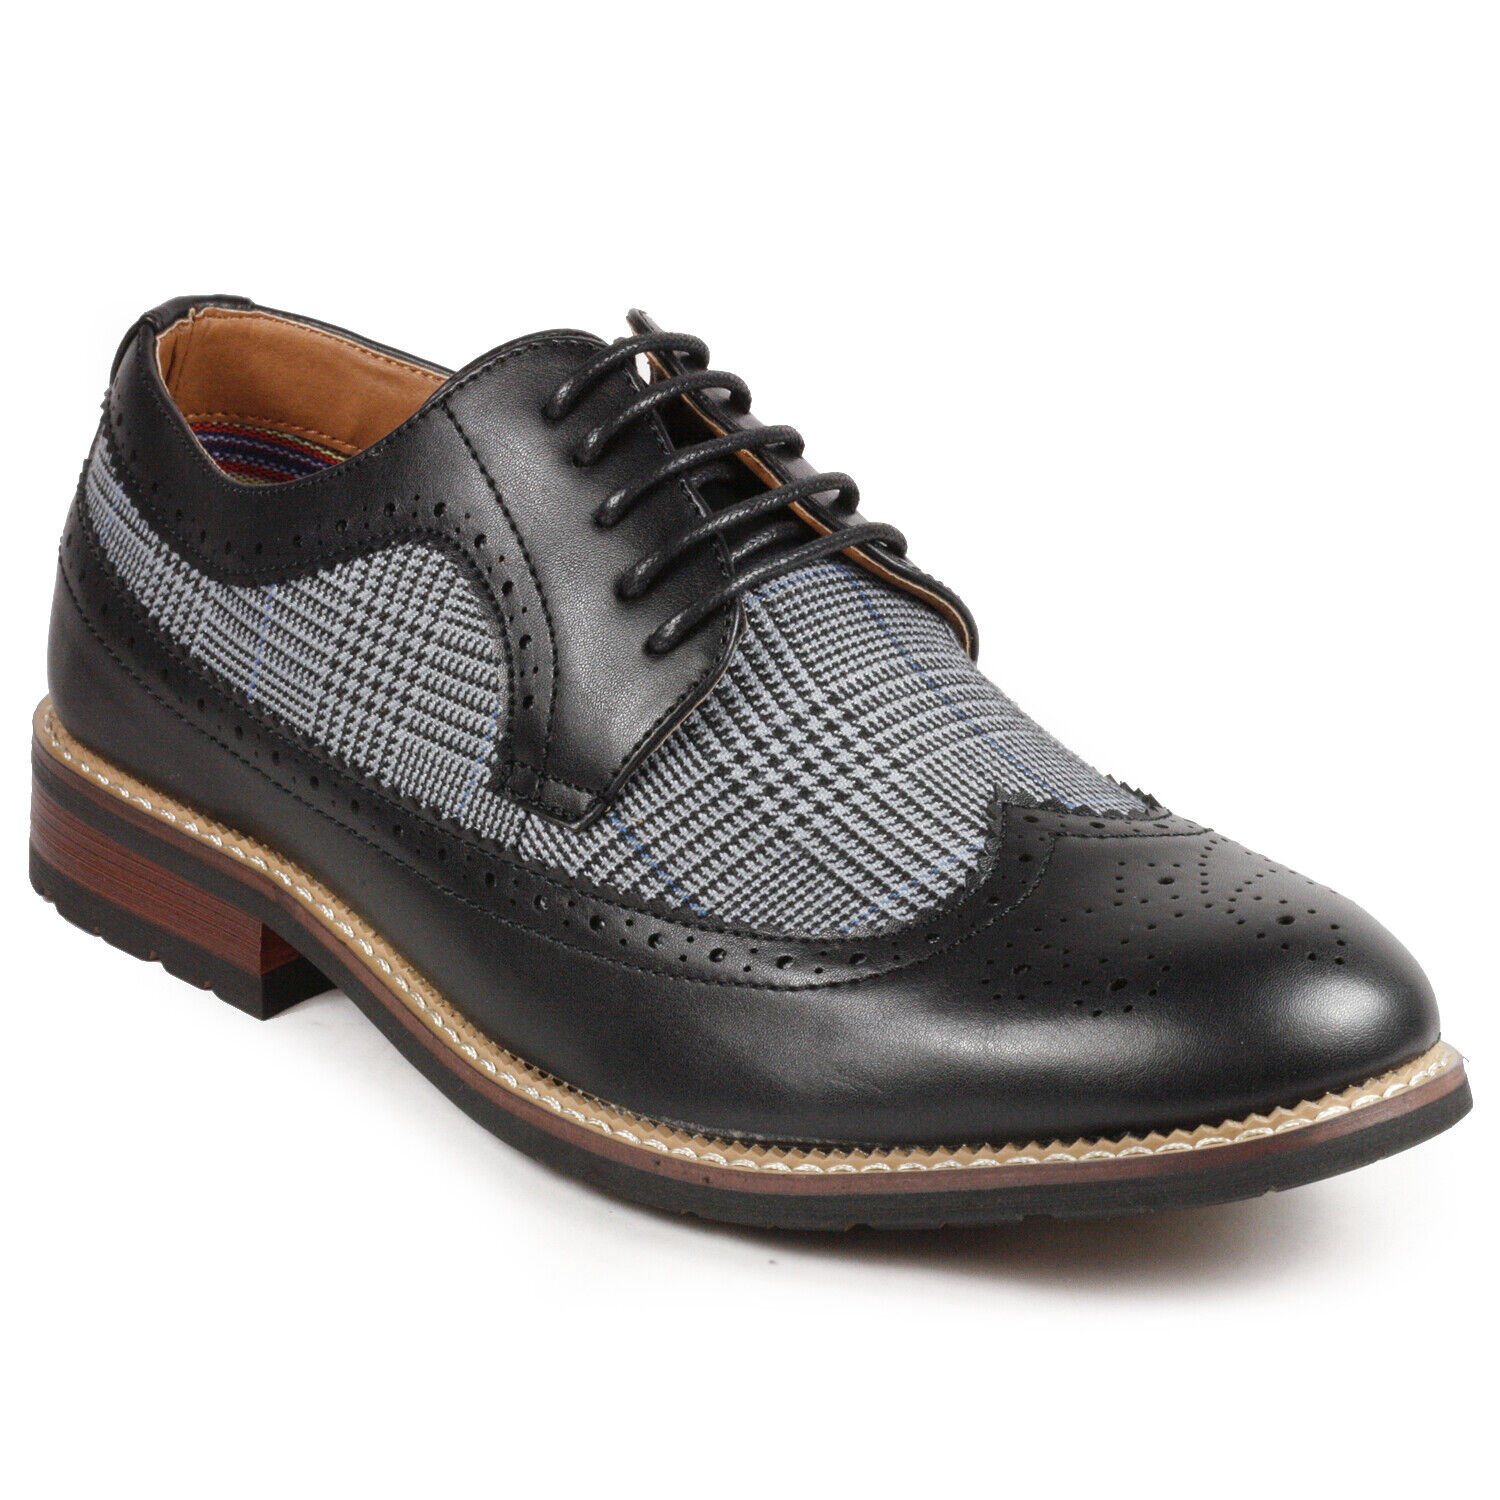 Black Tweed Men's Wing Tip Lace Up Oxford Dress Shoes 1